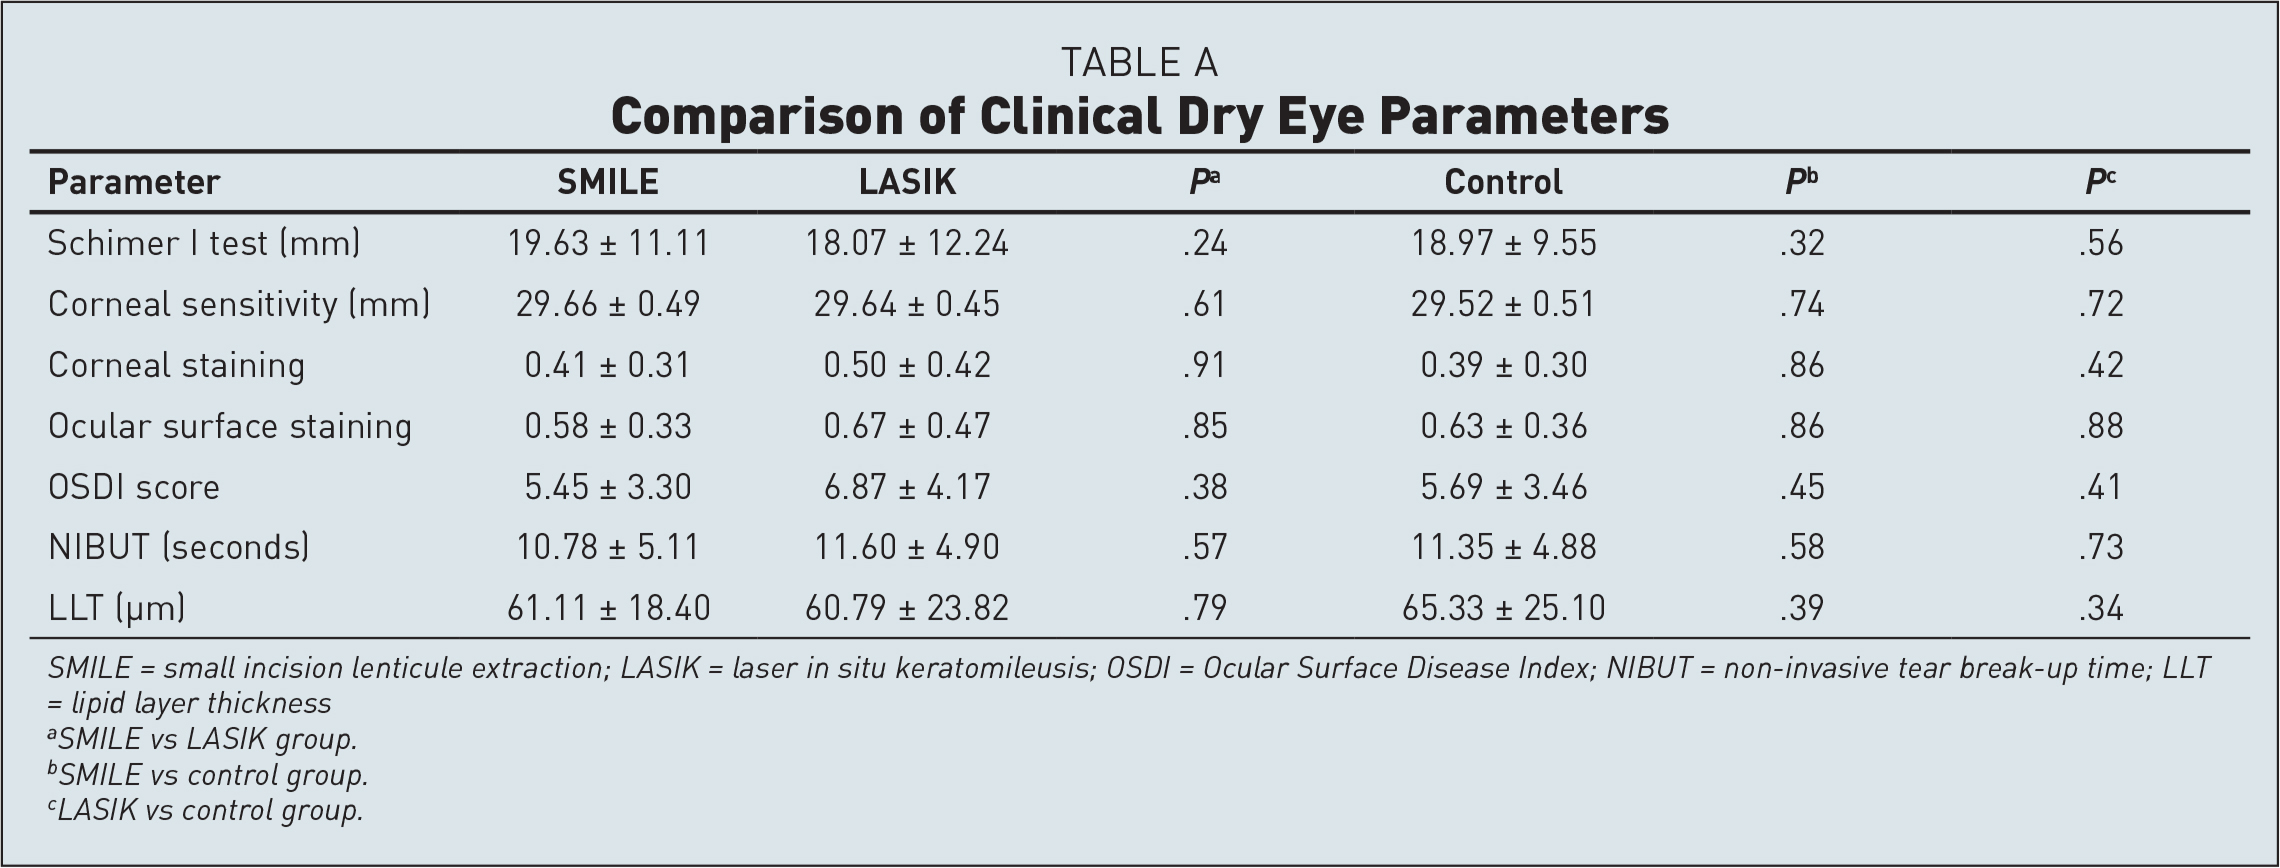 Comparison of Clinical Dry Eye Parameters